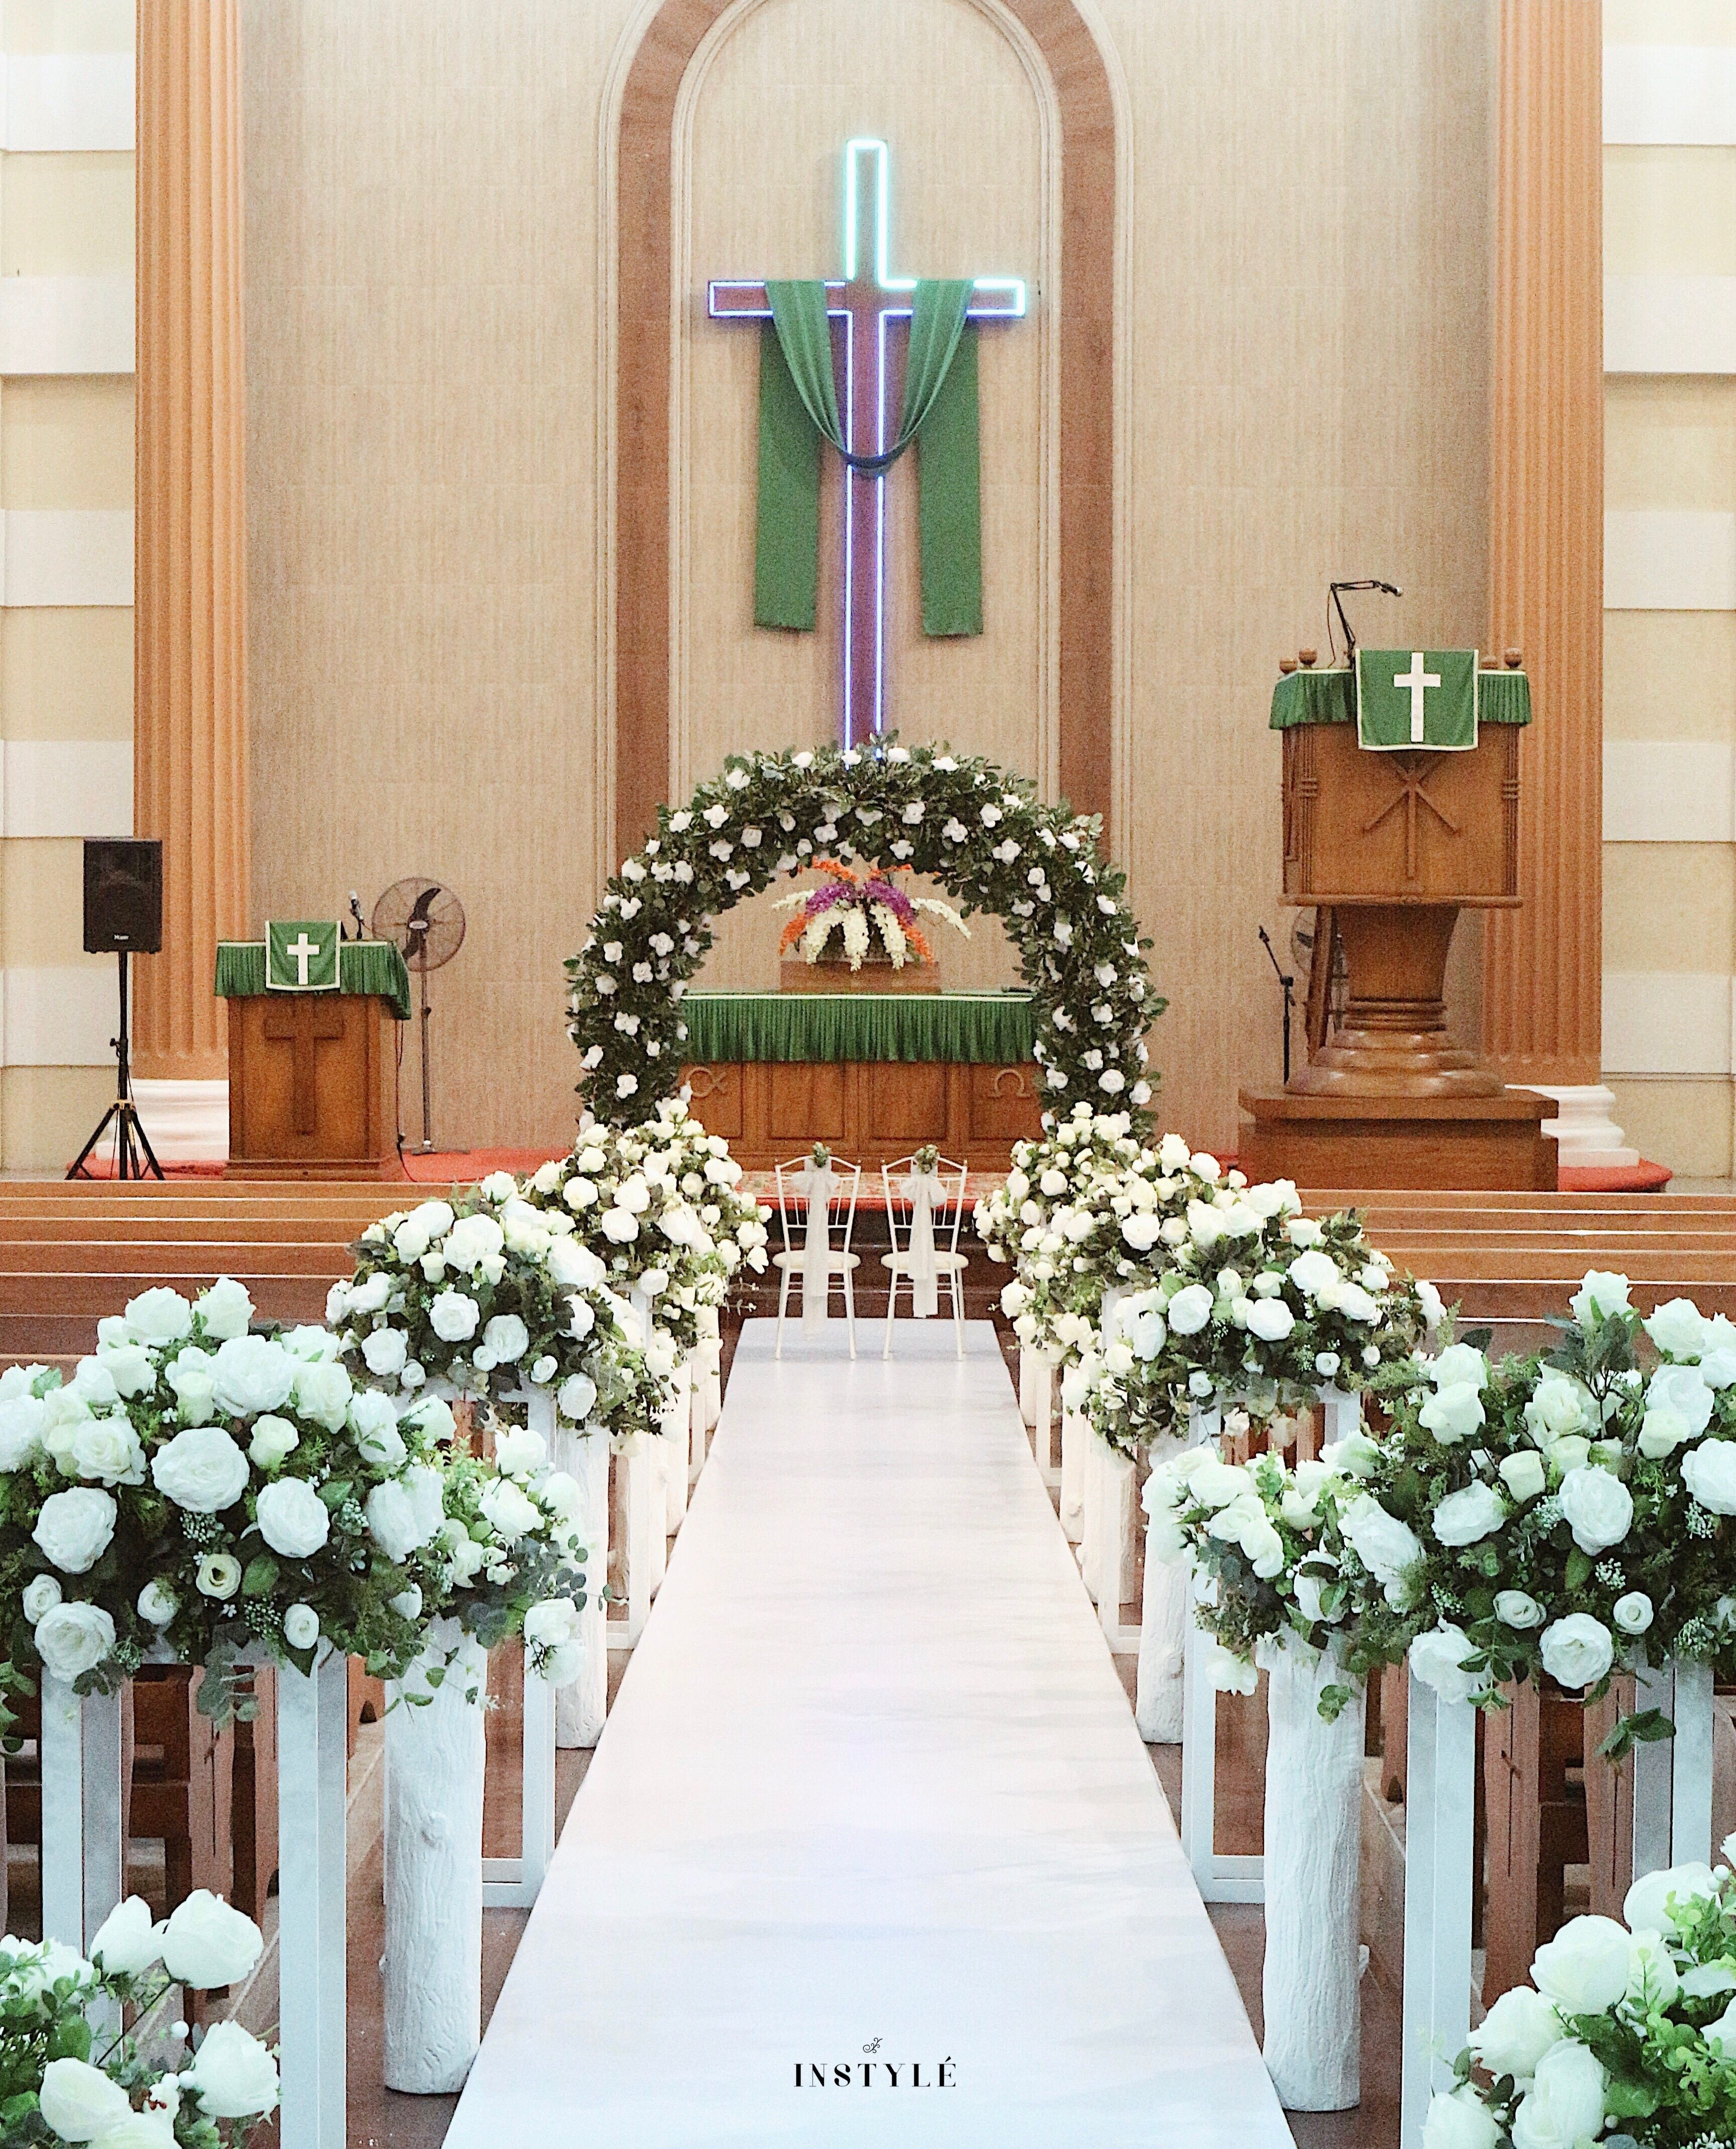 Church Wedding Decoration With White And Greenery Theme